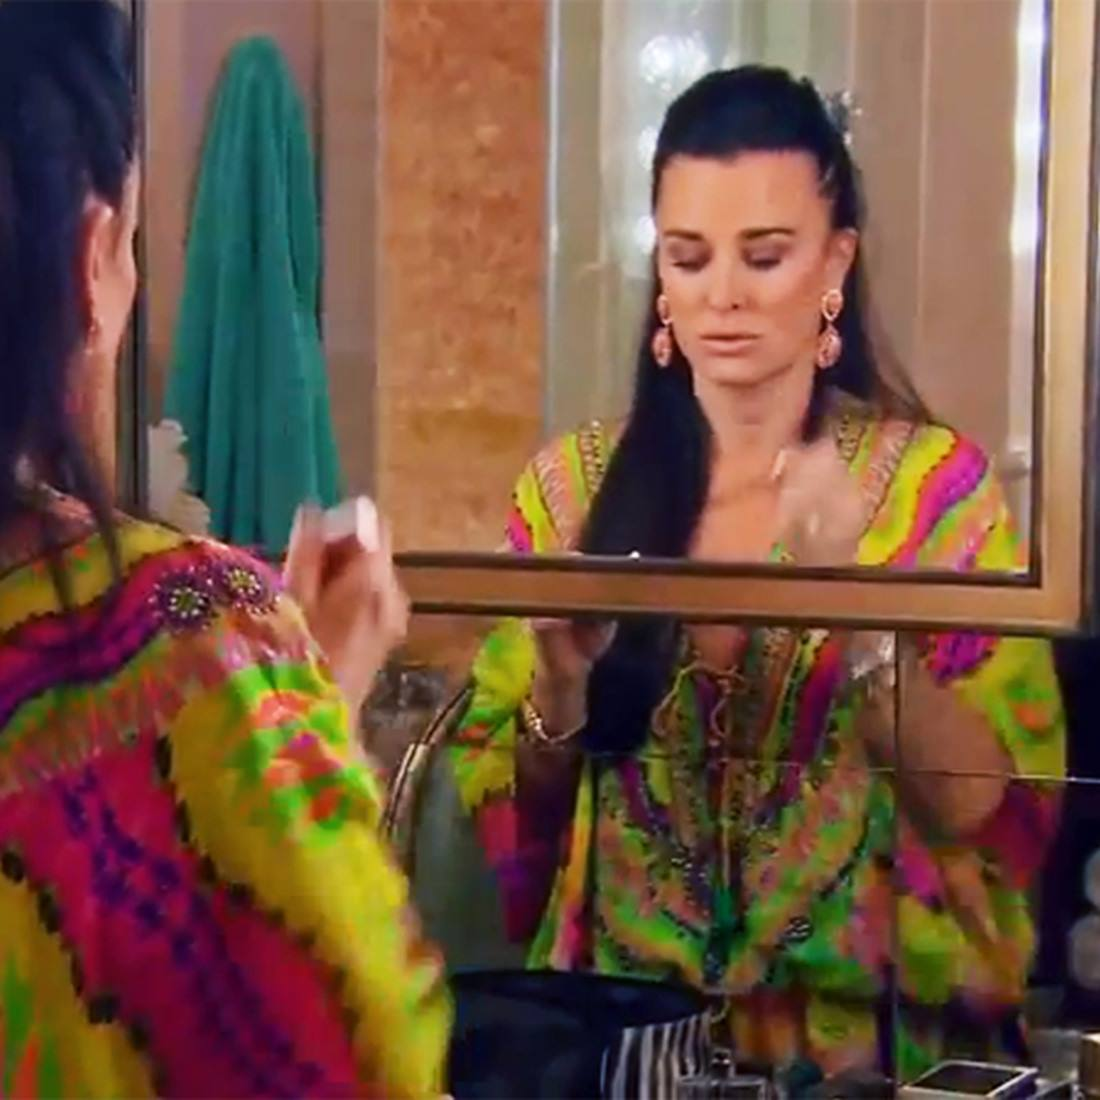 RHOBH star Kyle Richards Kaftan from Shahida Parides